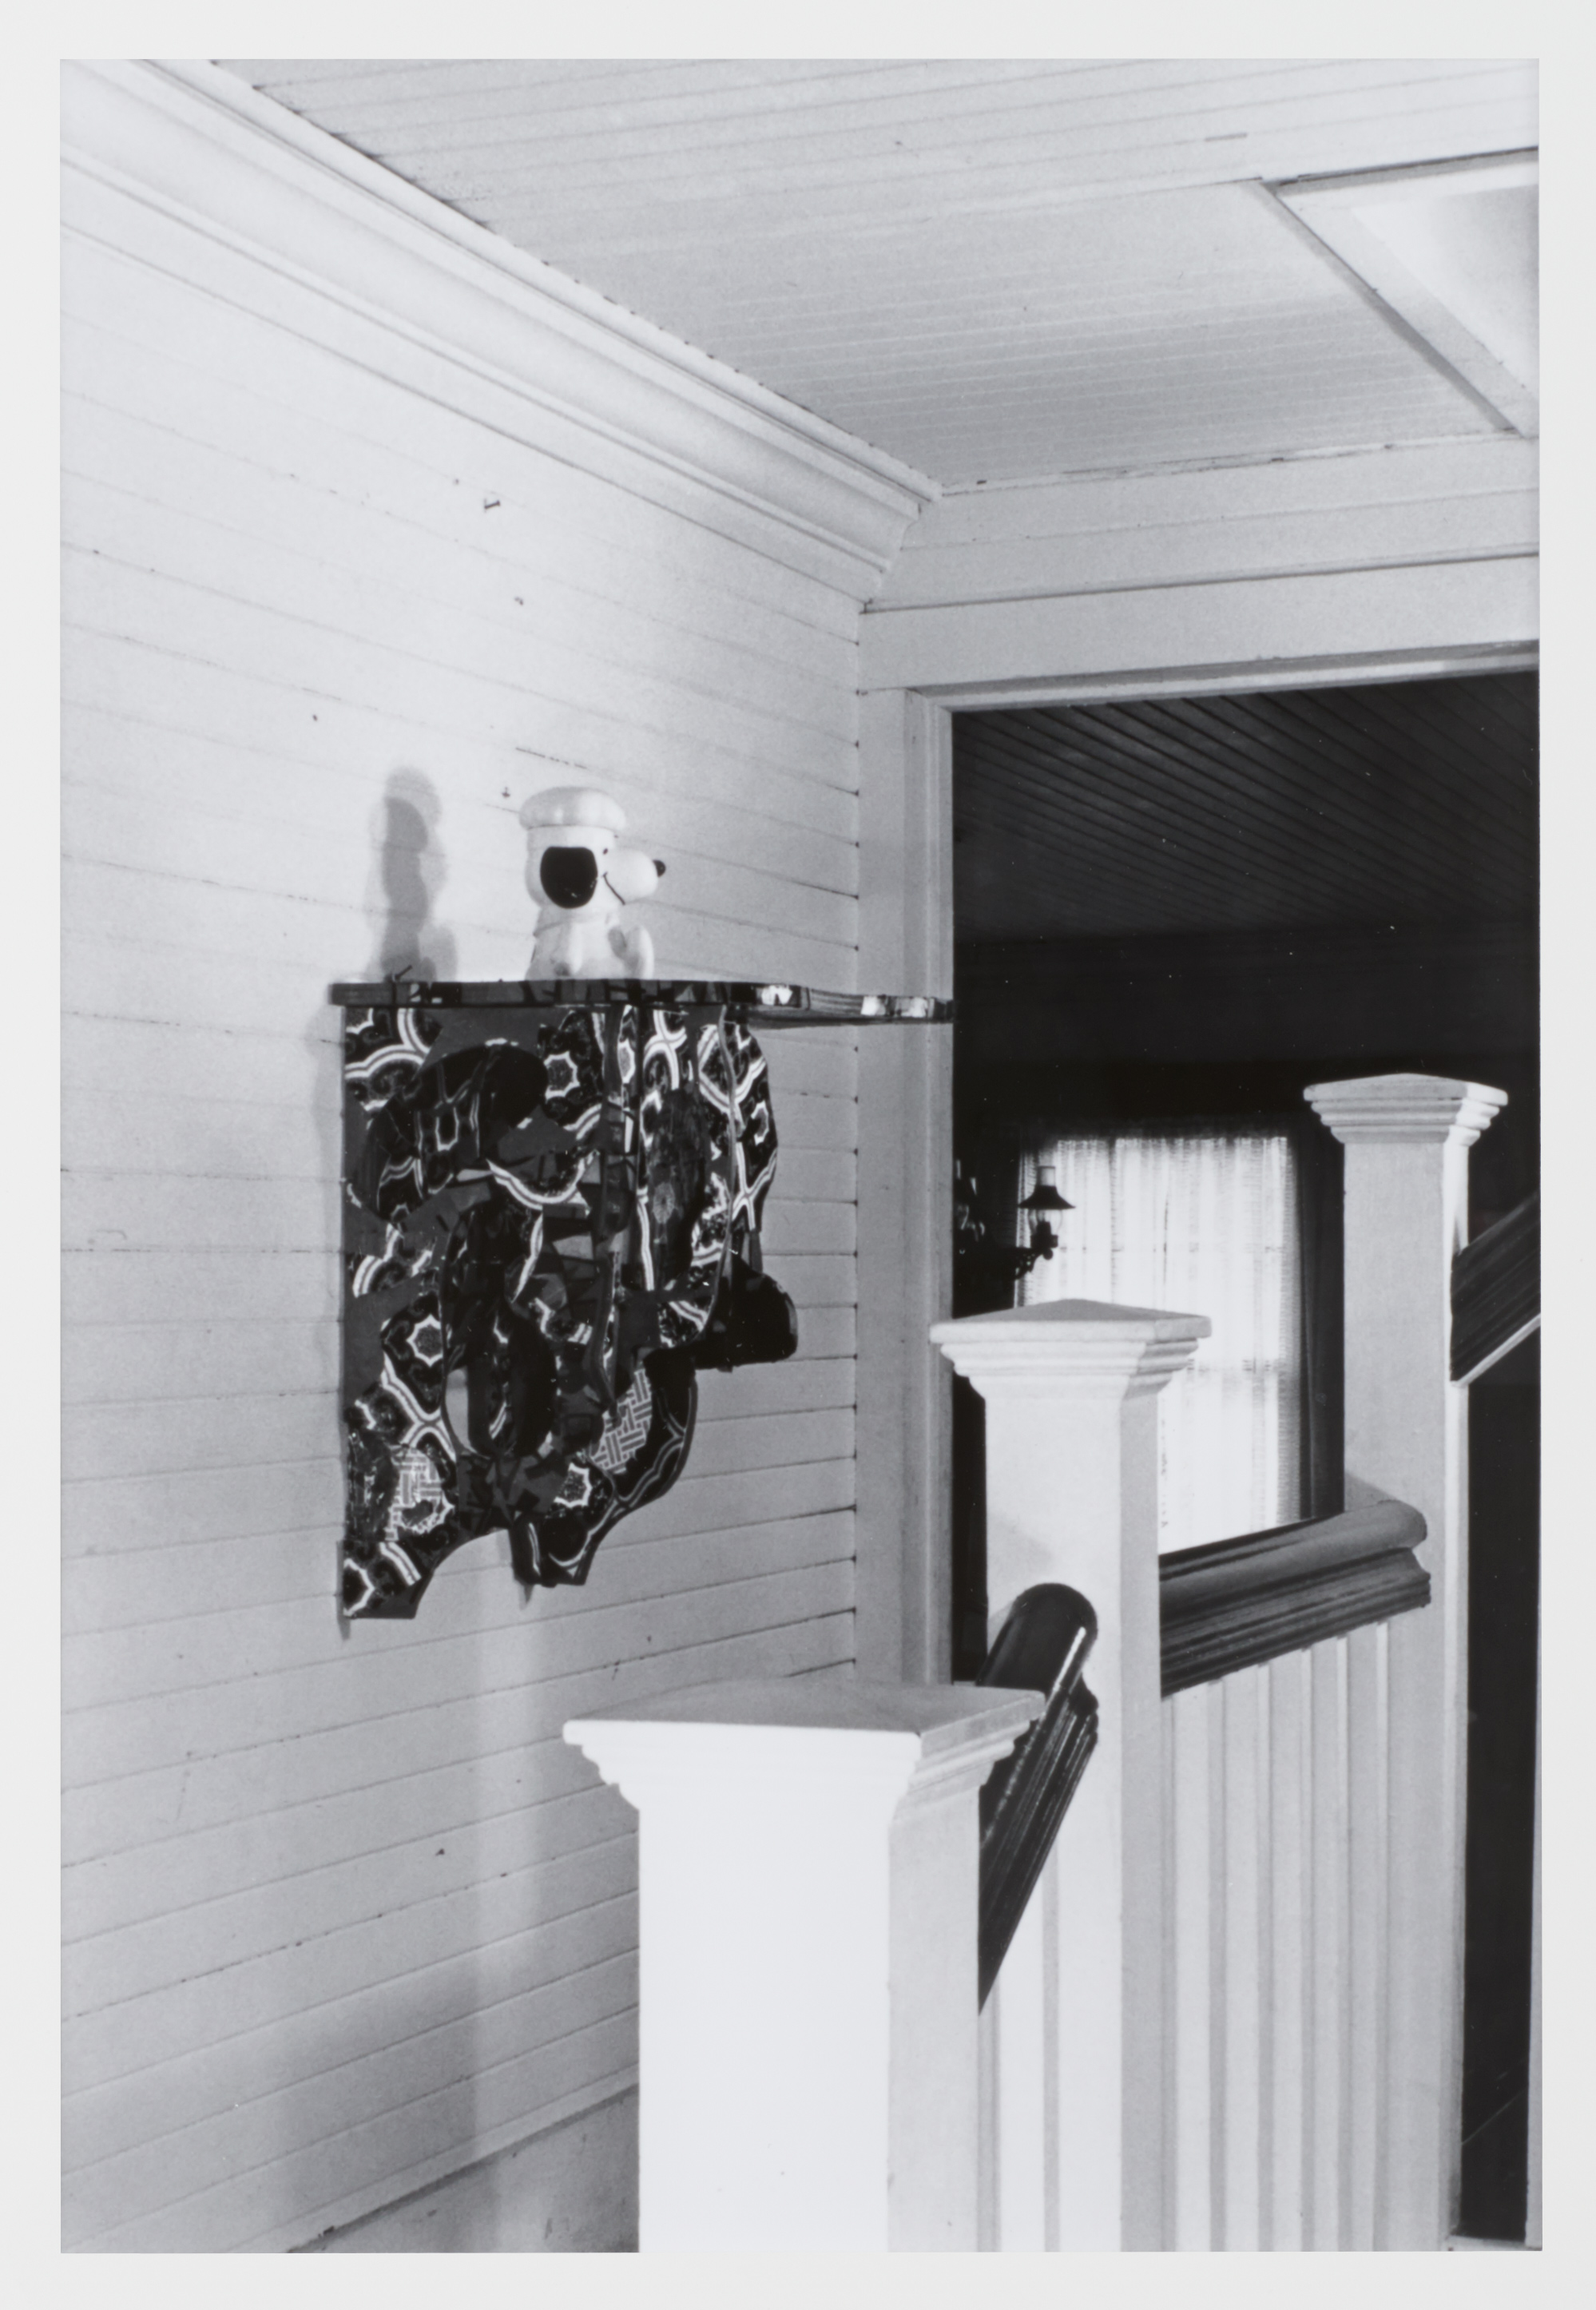 Shelf Arrangement for the Wachtel's Stairway, Hampton Bays, New York, by Haim Steinbach, 1982